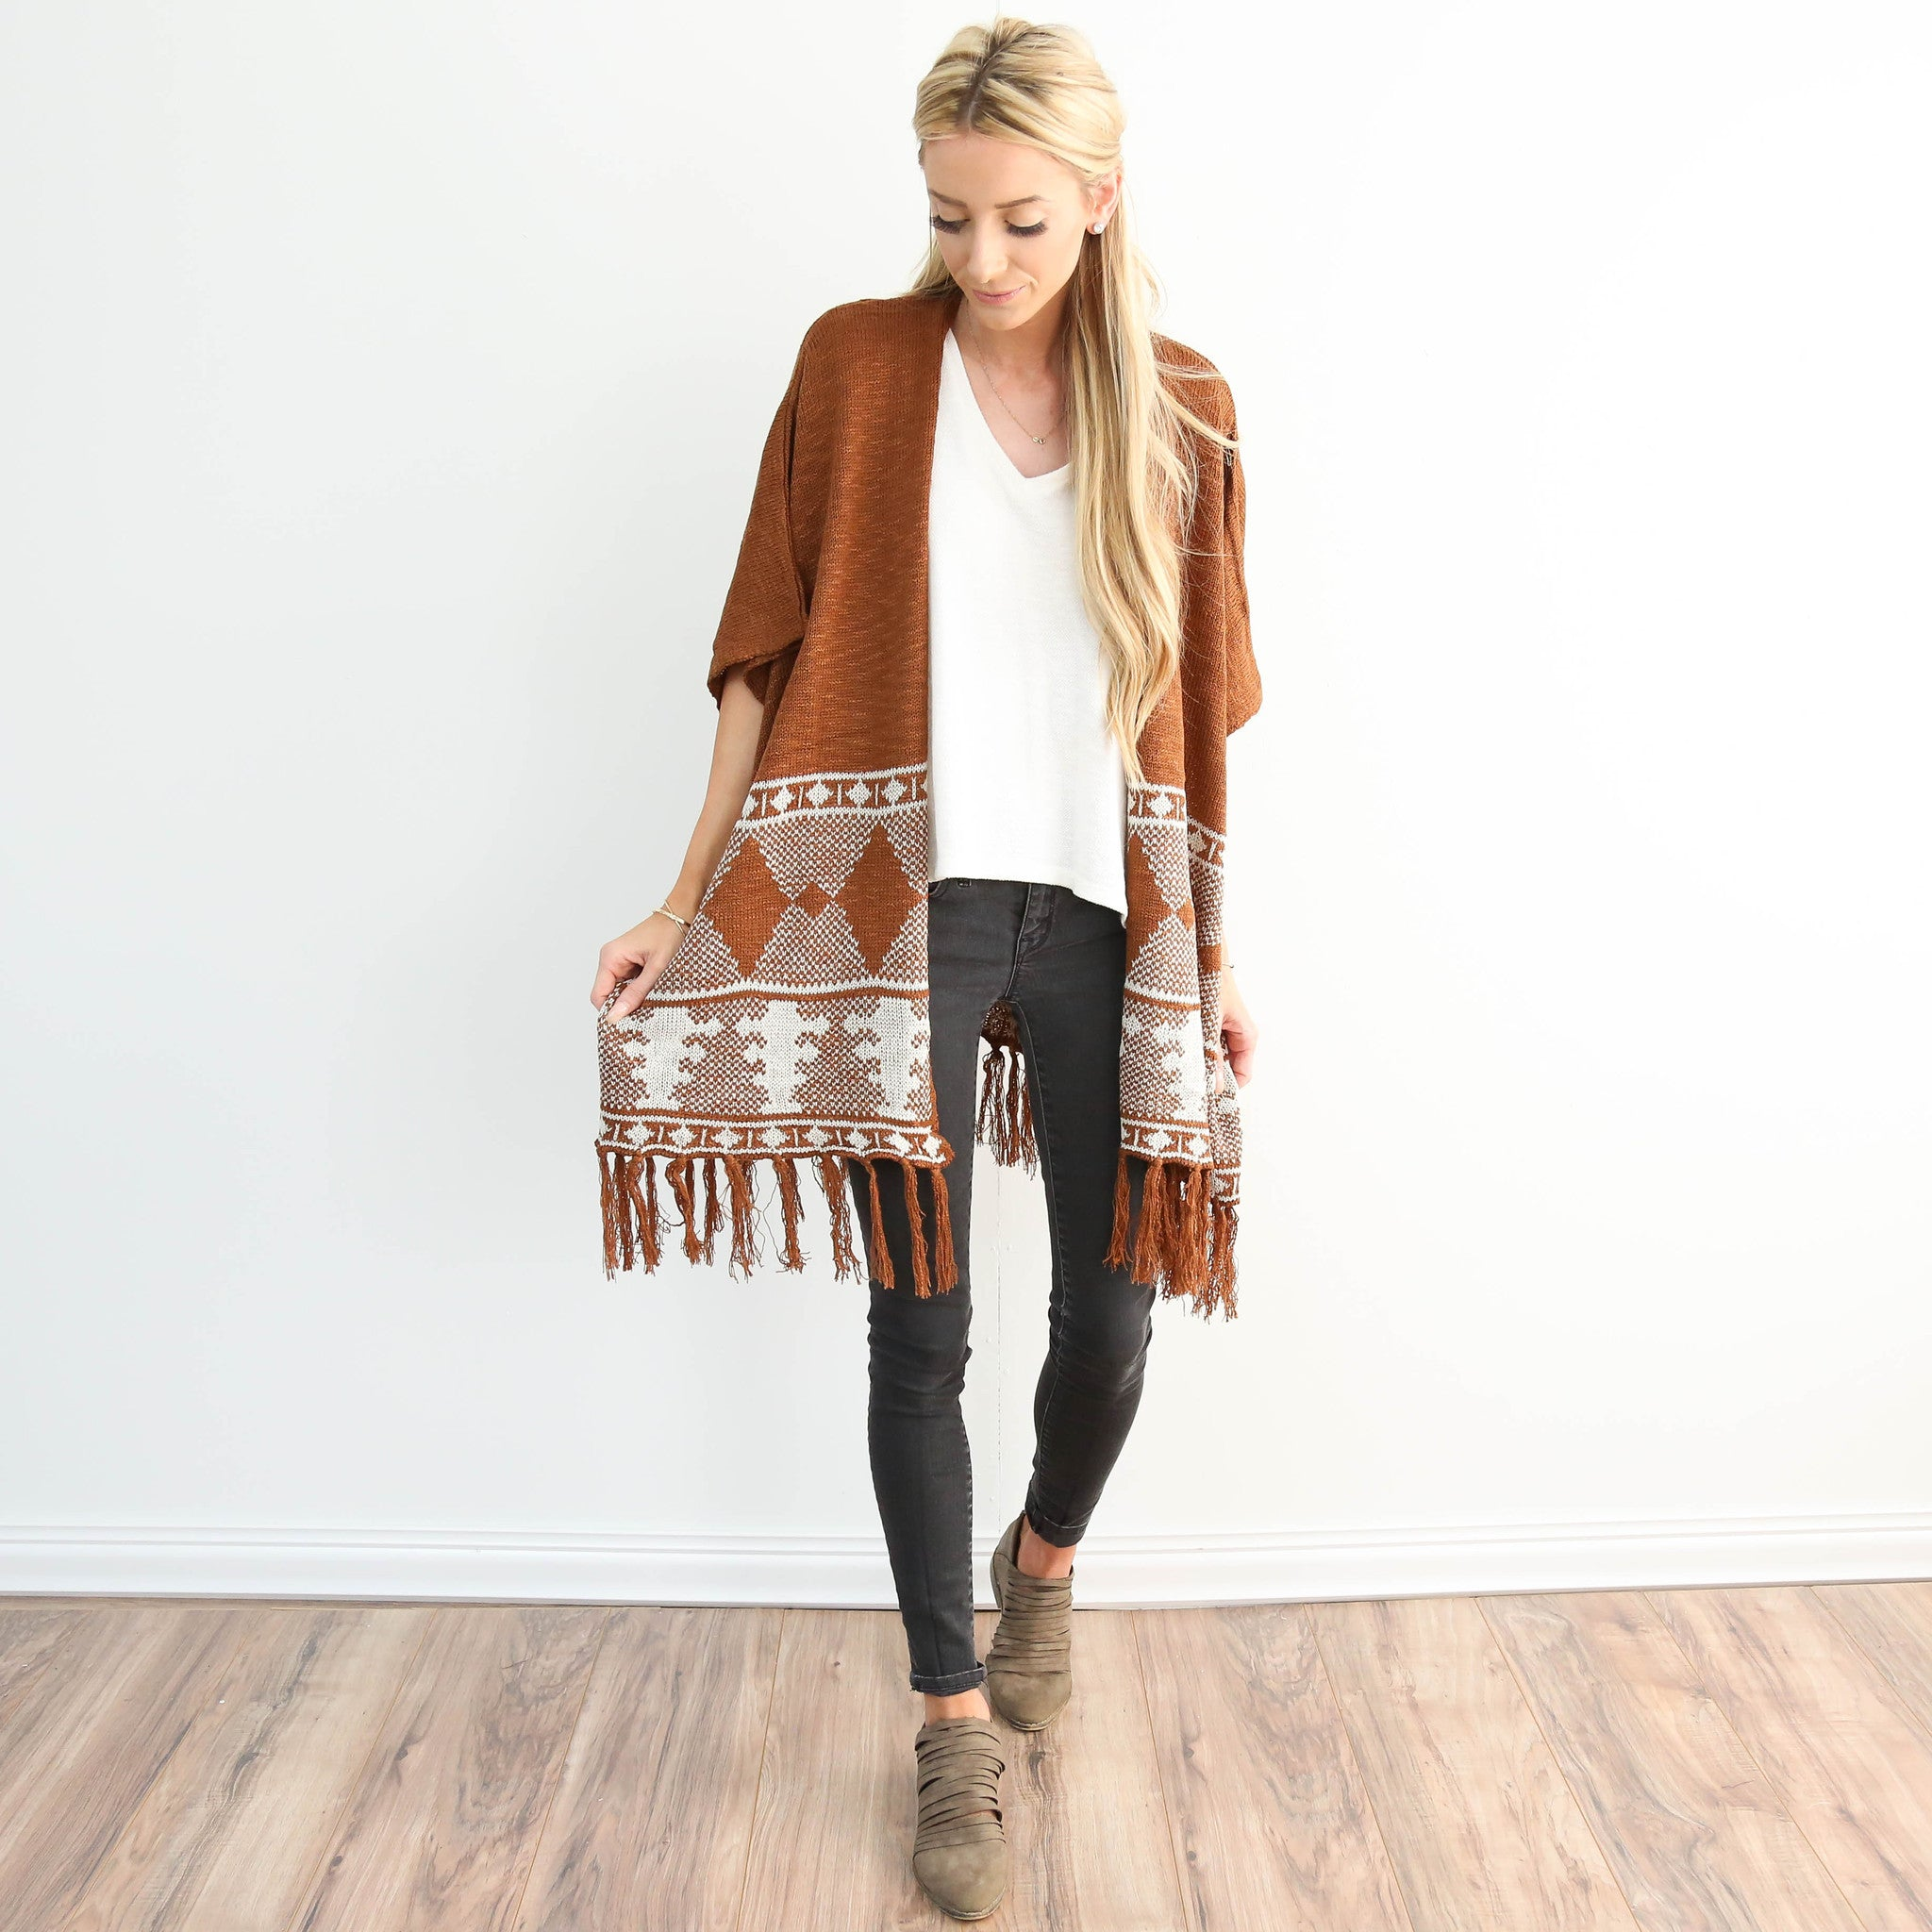 Southwest Knit Cardigan in Brown